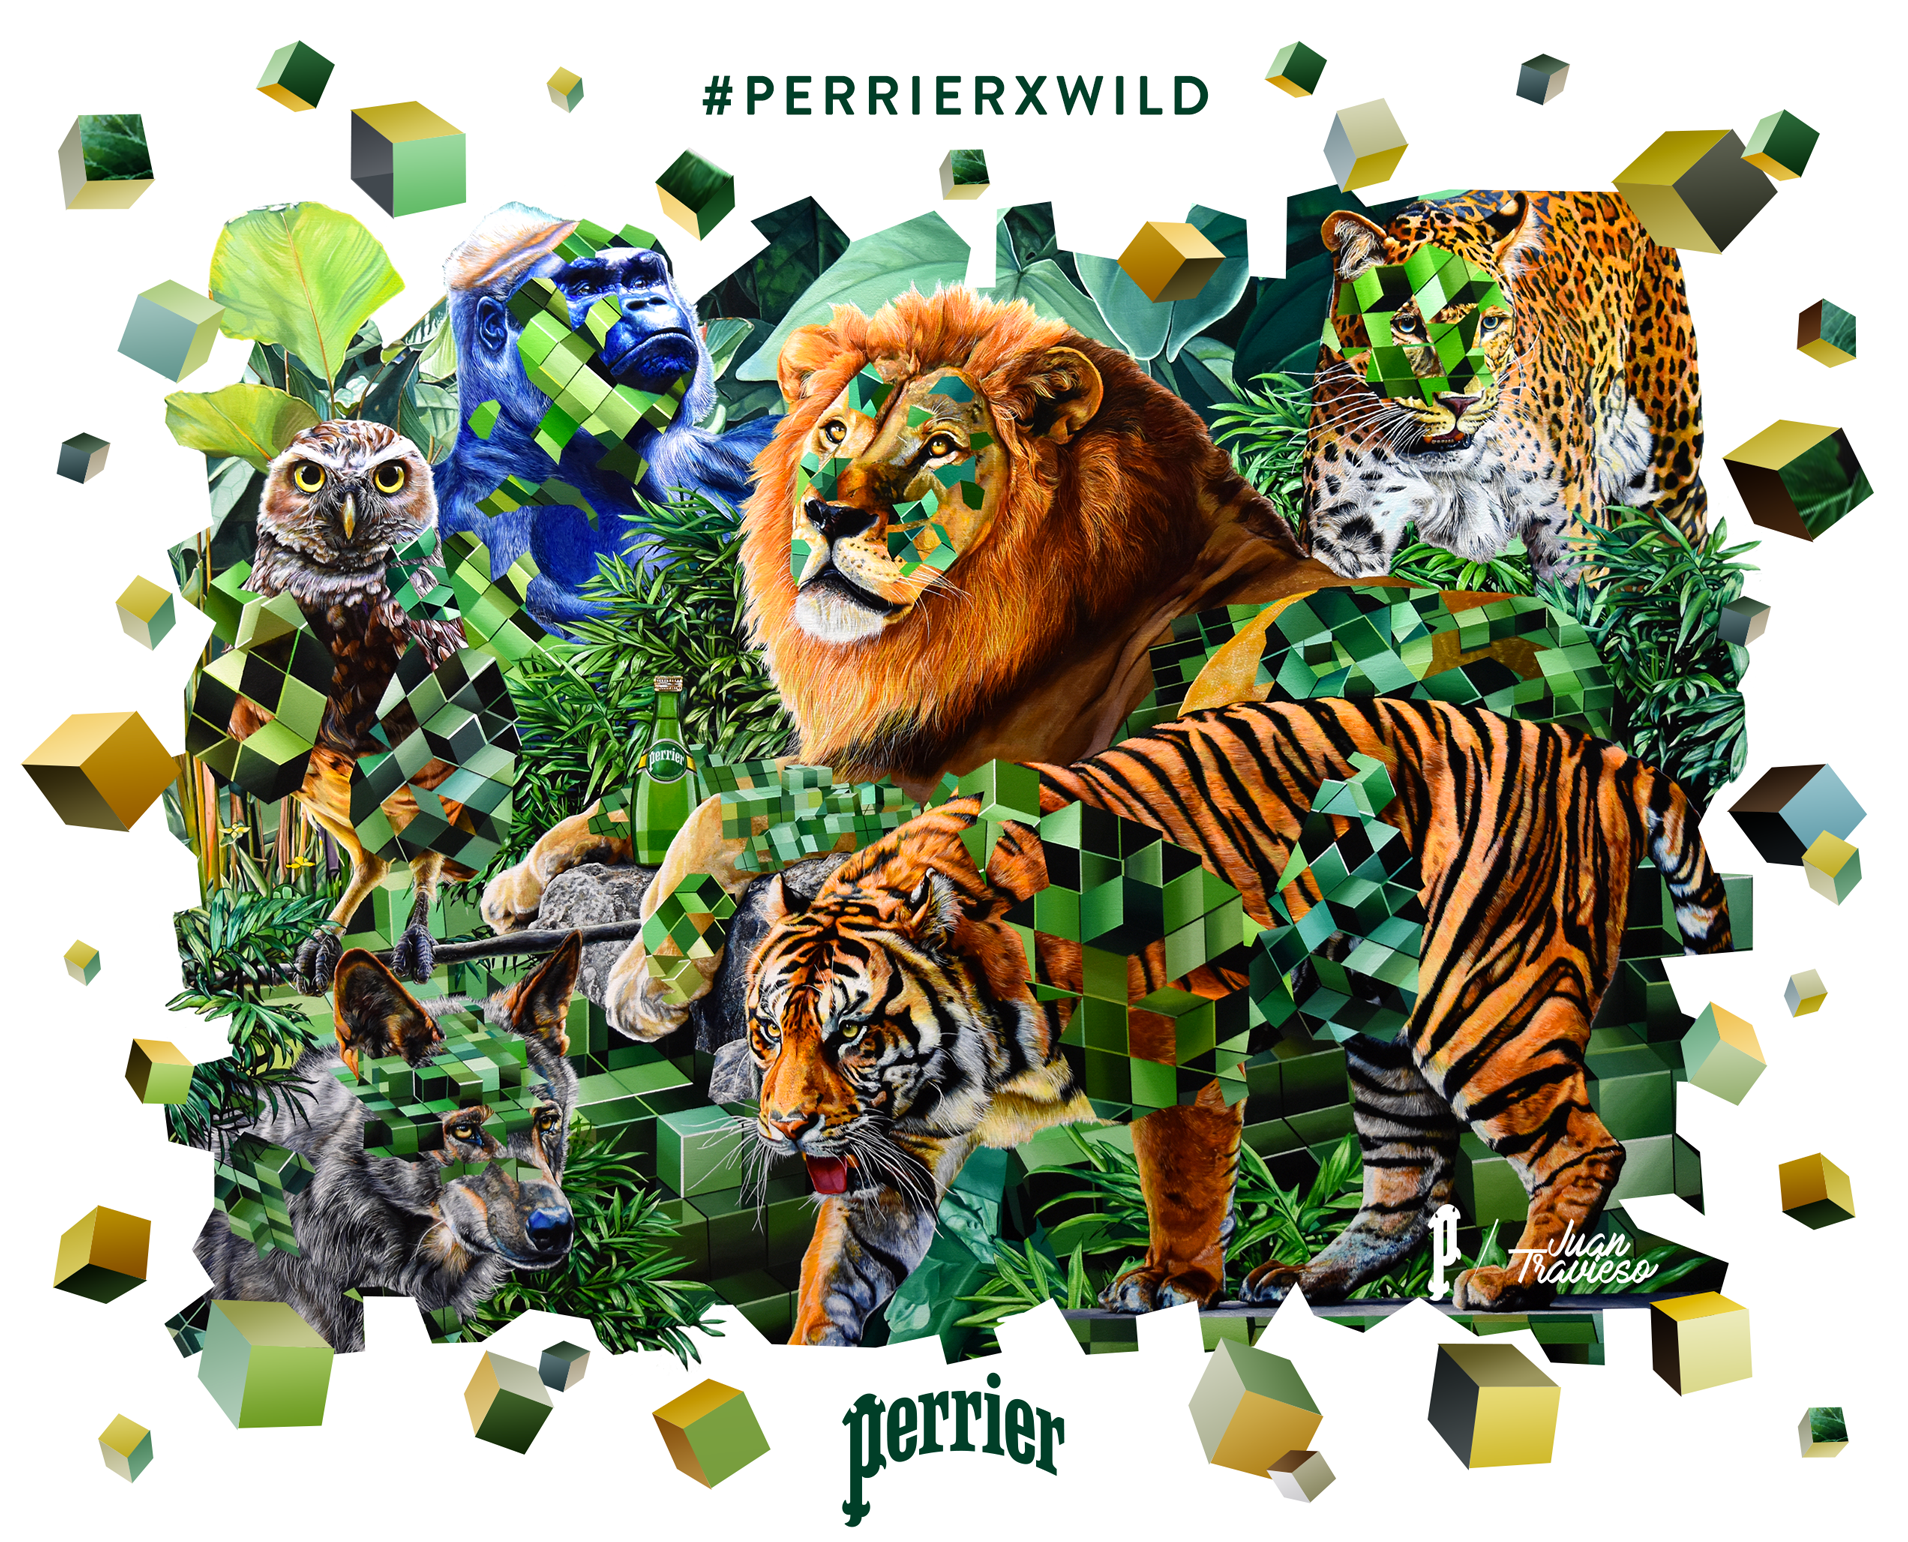 Key_Visual PerrierxWild